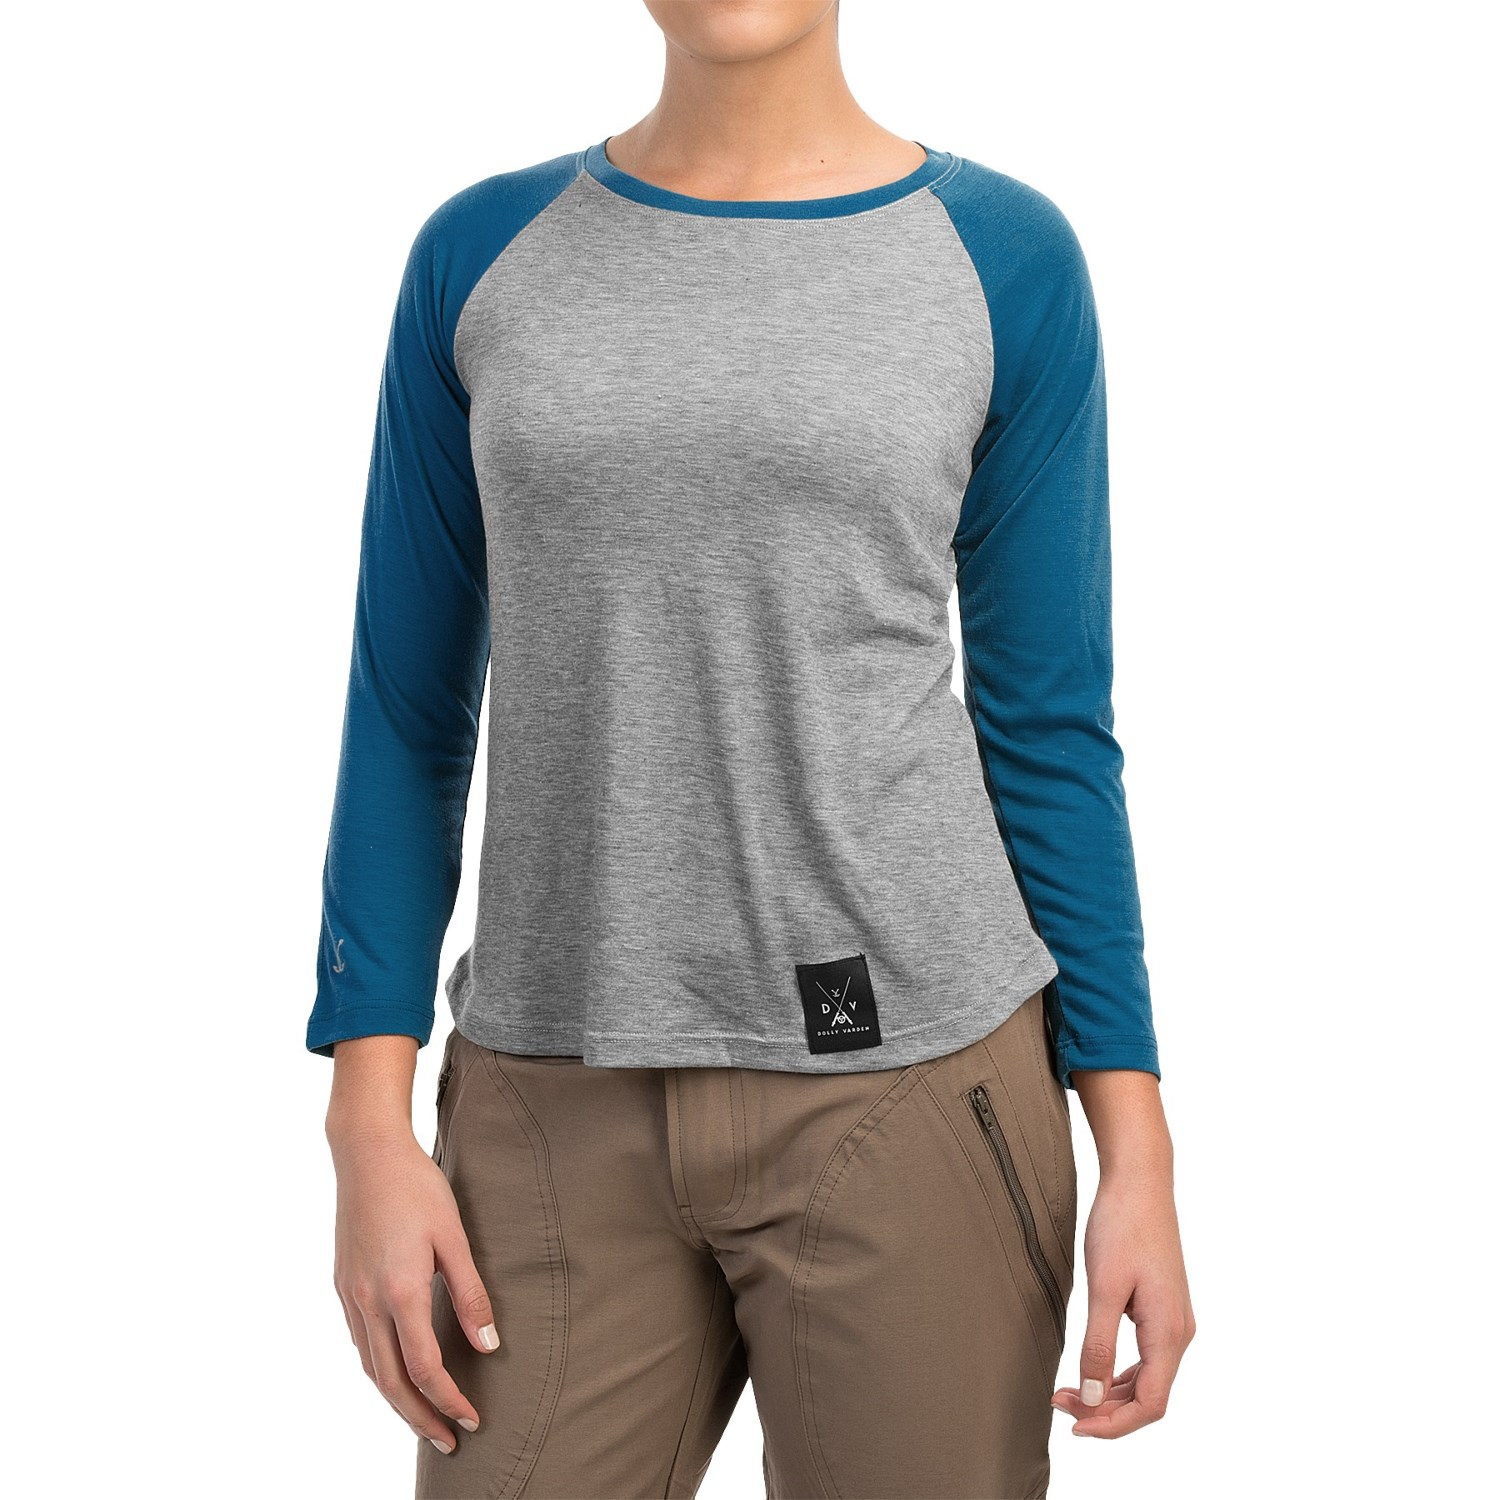 Dolly Varden Biscayne Ball Shirt For Women 111ry Save 78